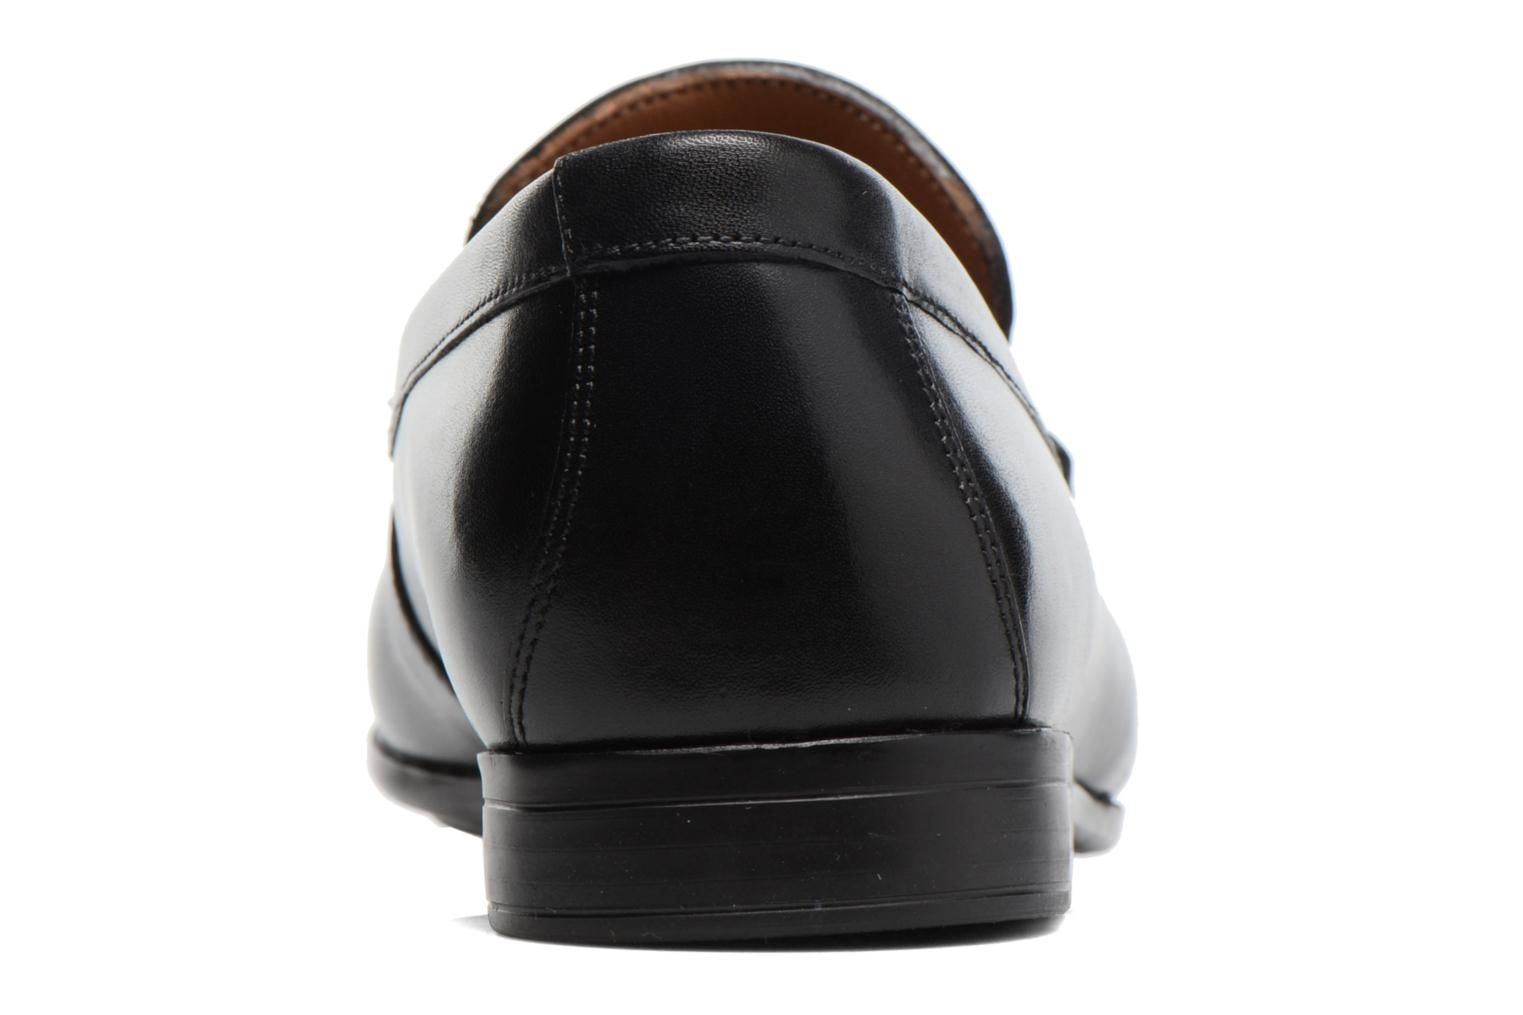 Claude Lane Black leather